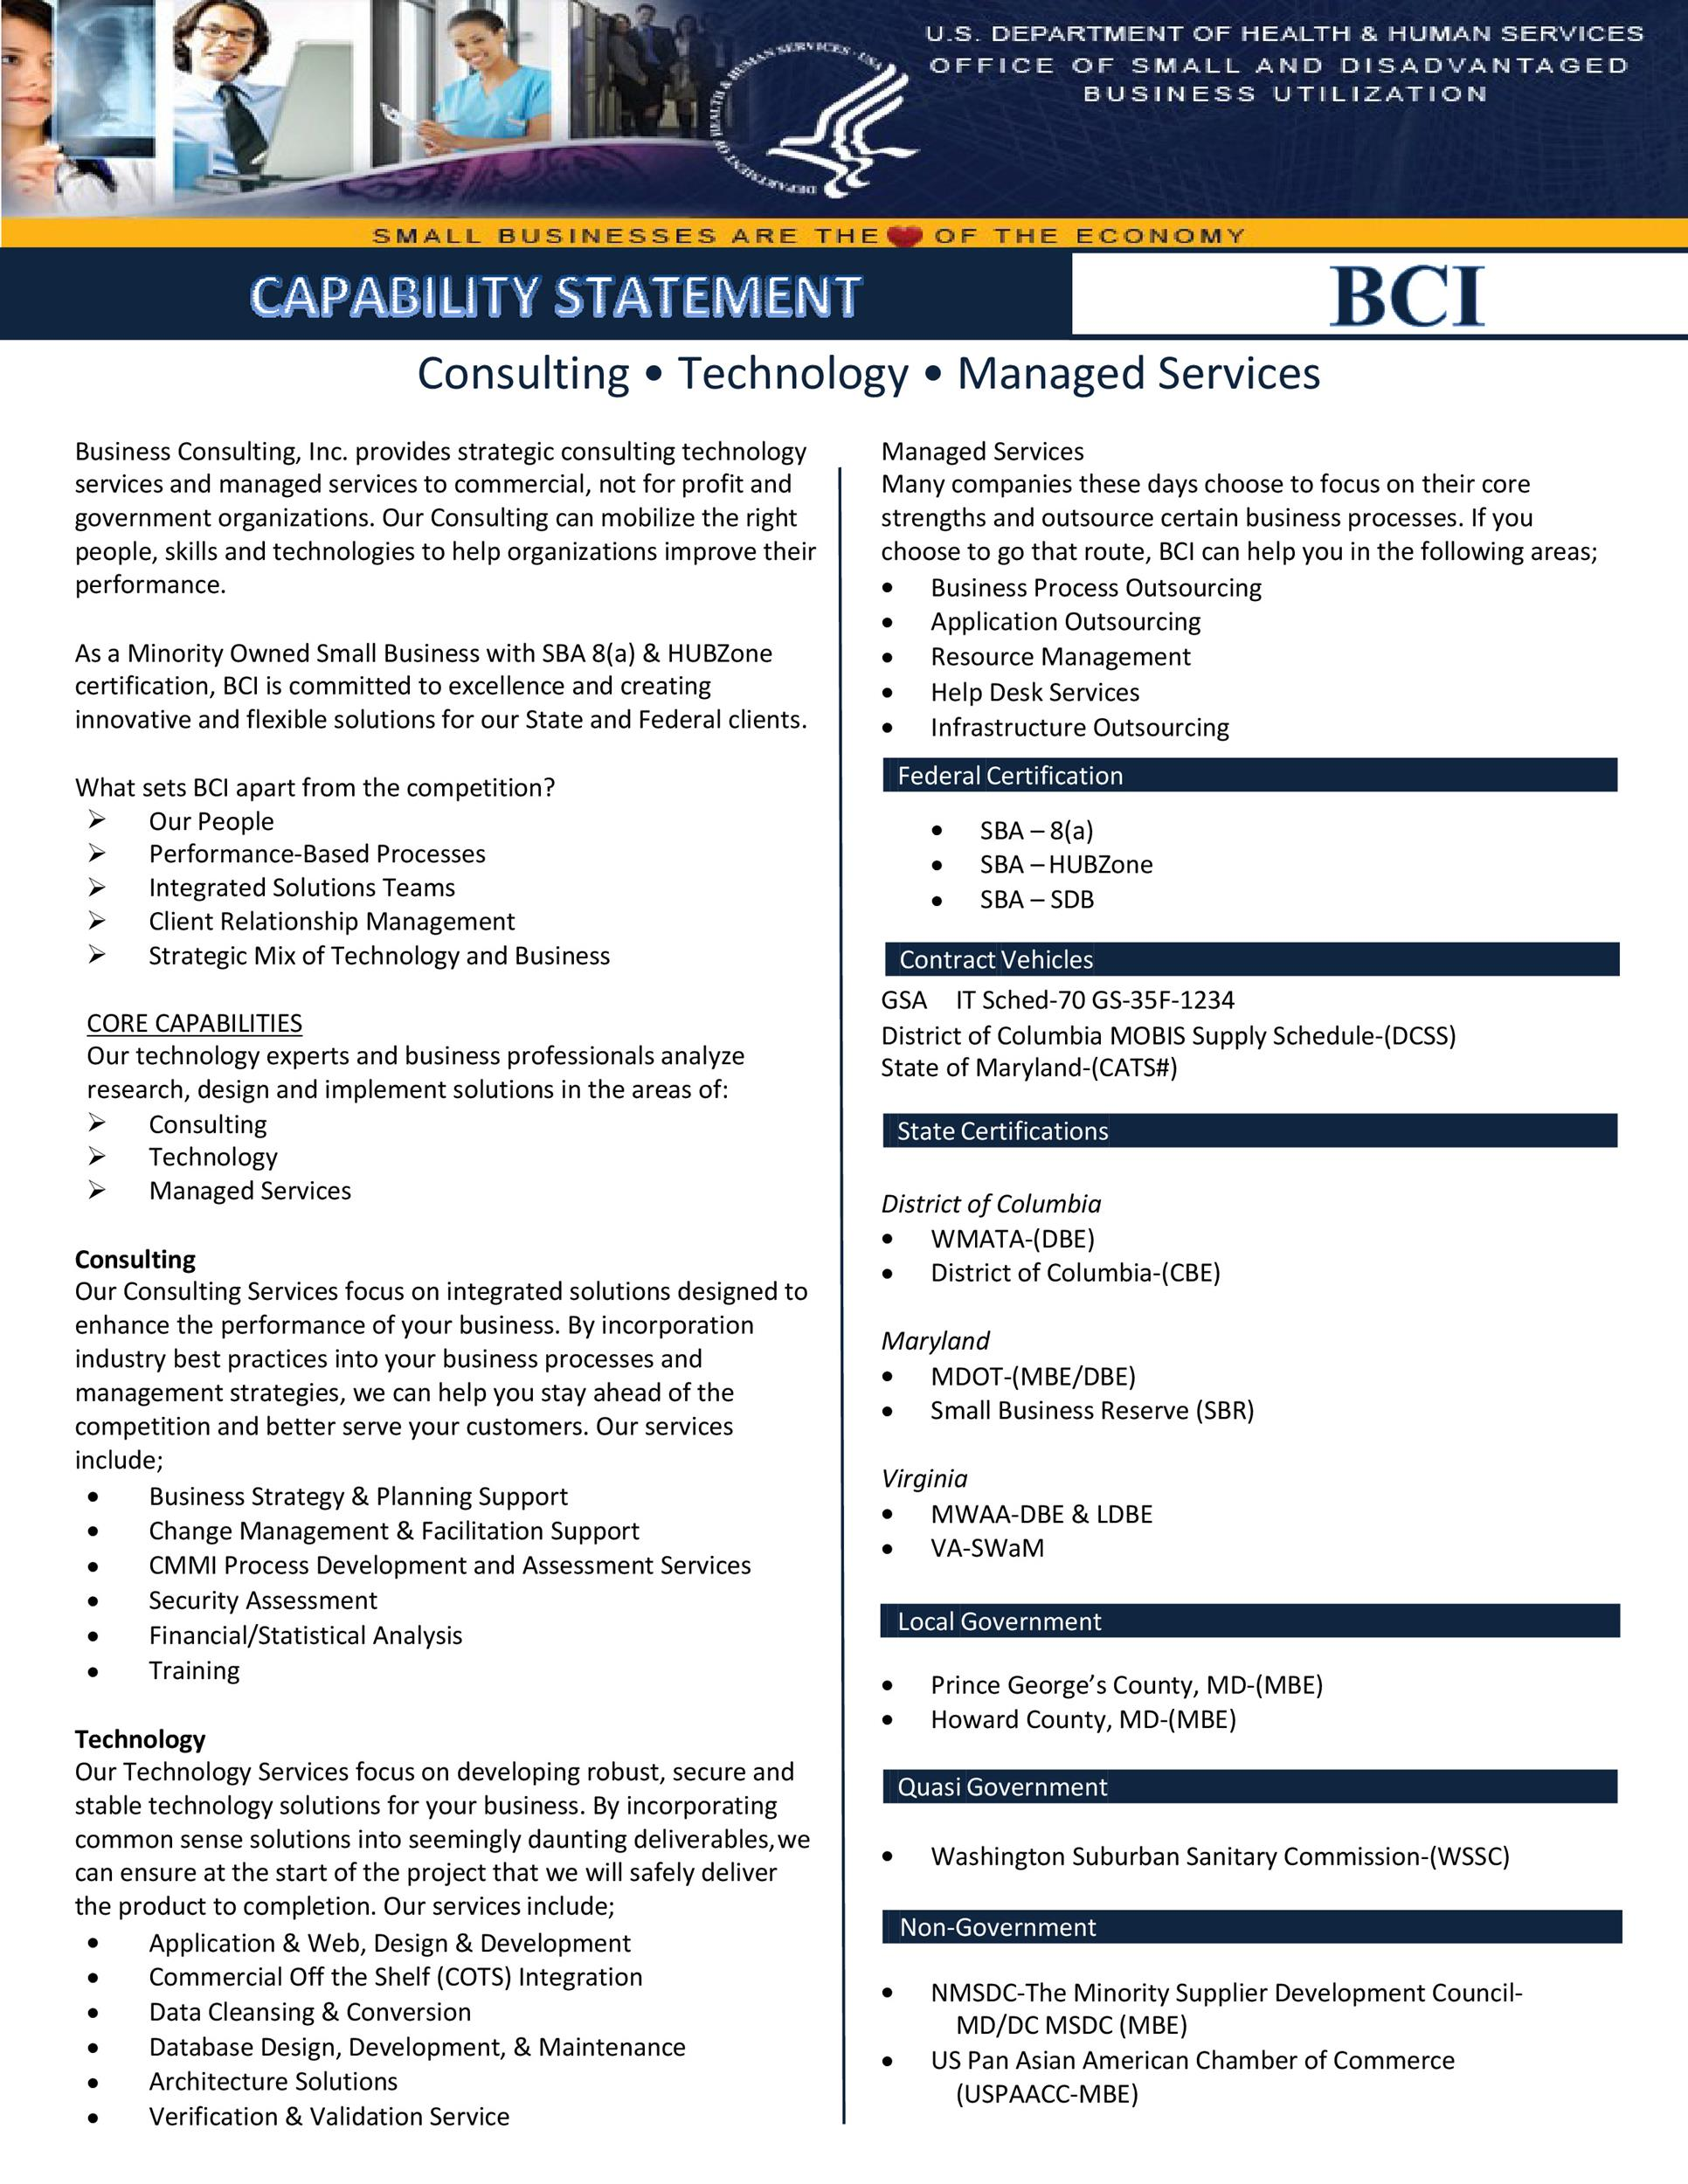 39 Effective Capability Statement Templates Examples